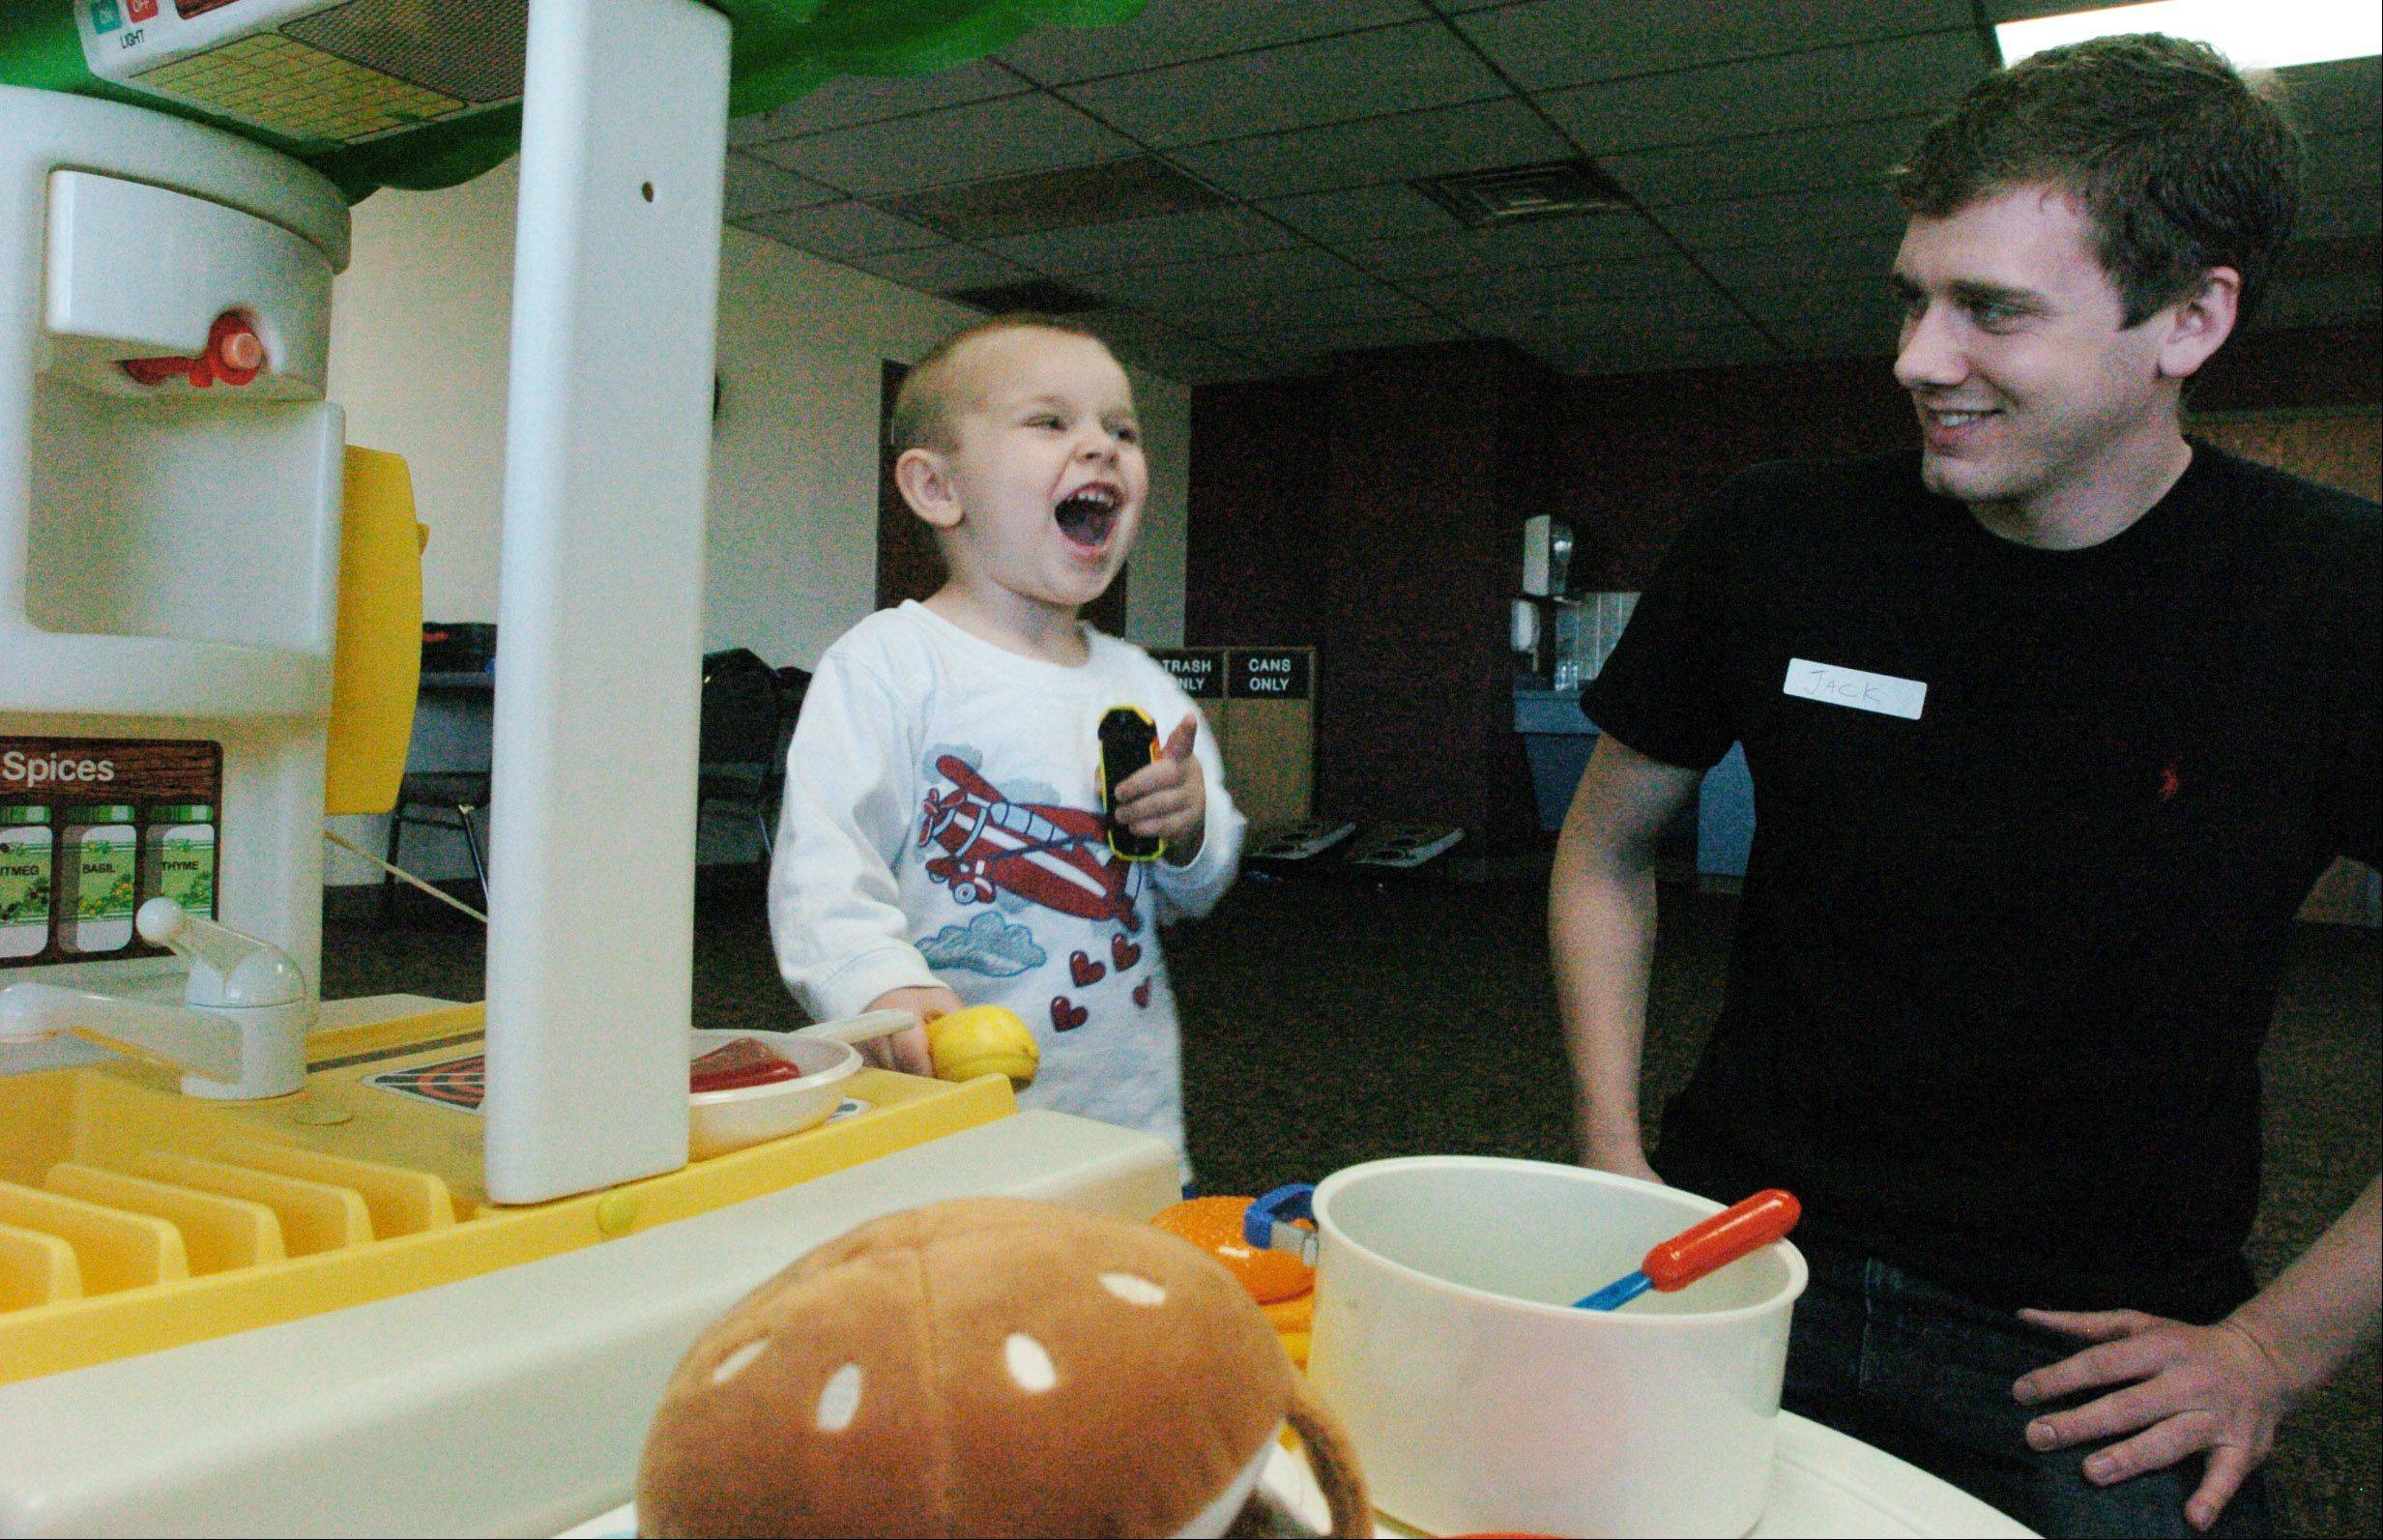 Austin Payne, 2, of Wheaton, spends time with Jack Gende during a recent visit to the NEDSRA headquarters in Addison as part of the Take a Break in the Afternoon program.